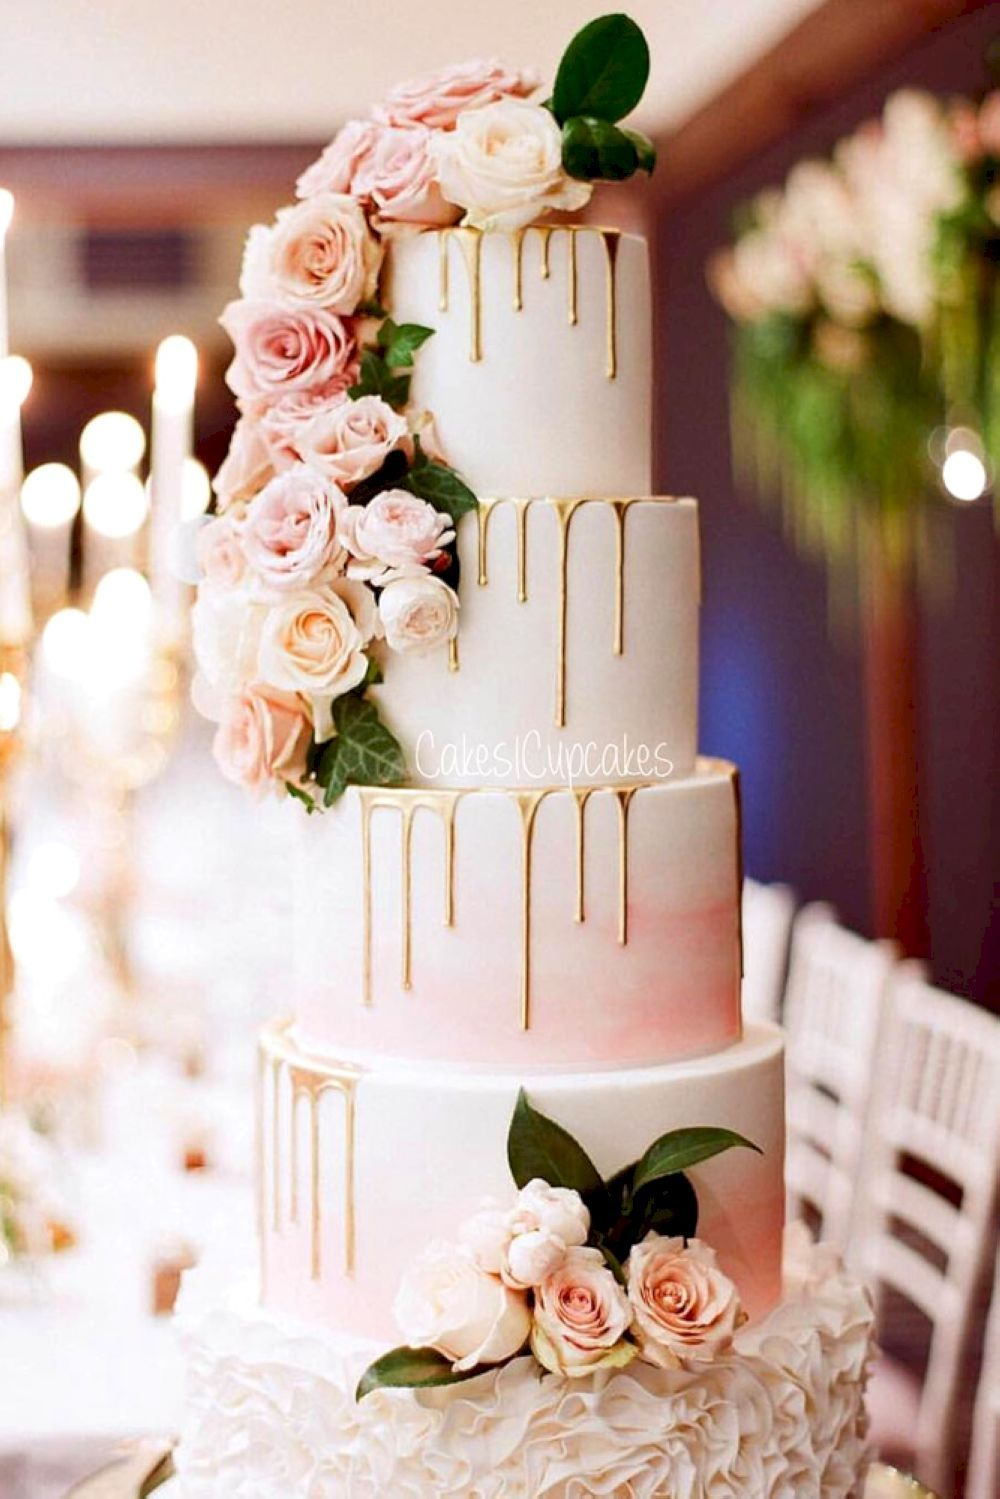 wedding cake for 200 people 200 fantastic wedding cake ideas for your wedding cakes 22699